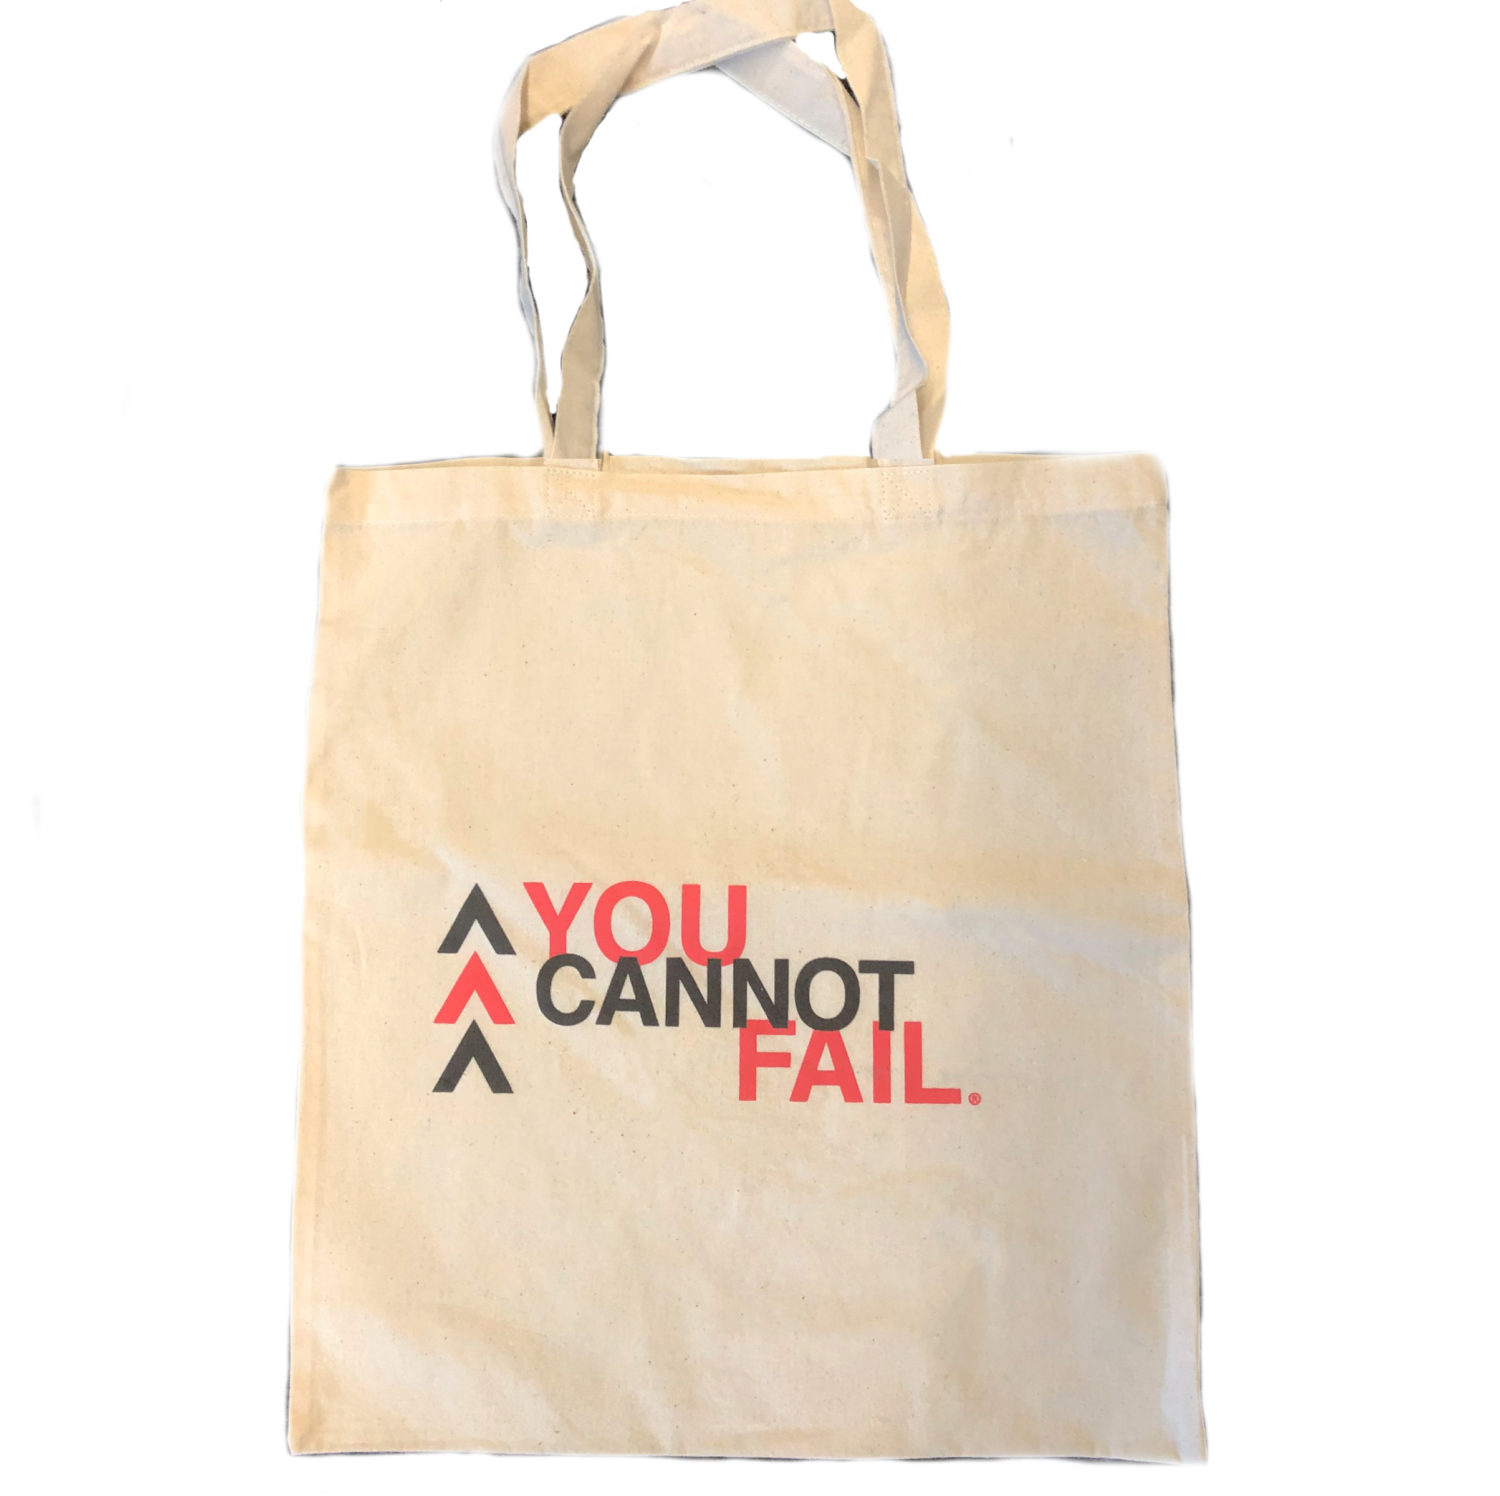 YCF Canvas Tote Bag